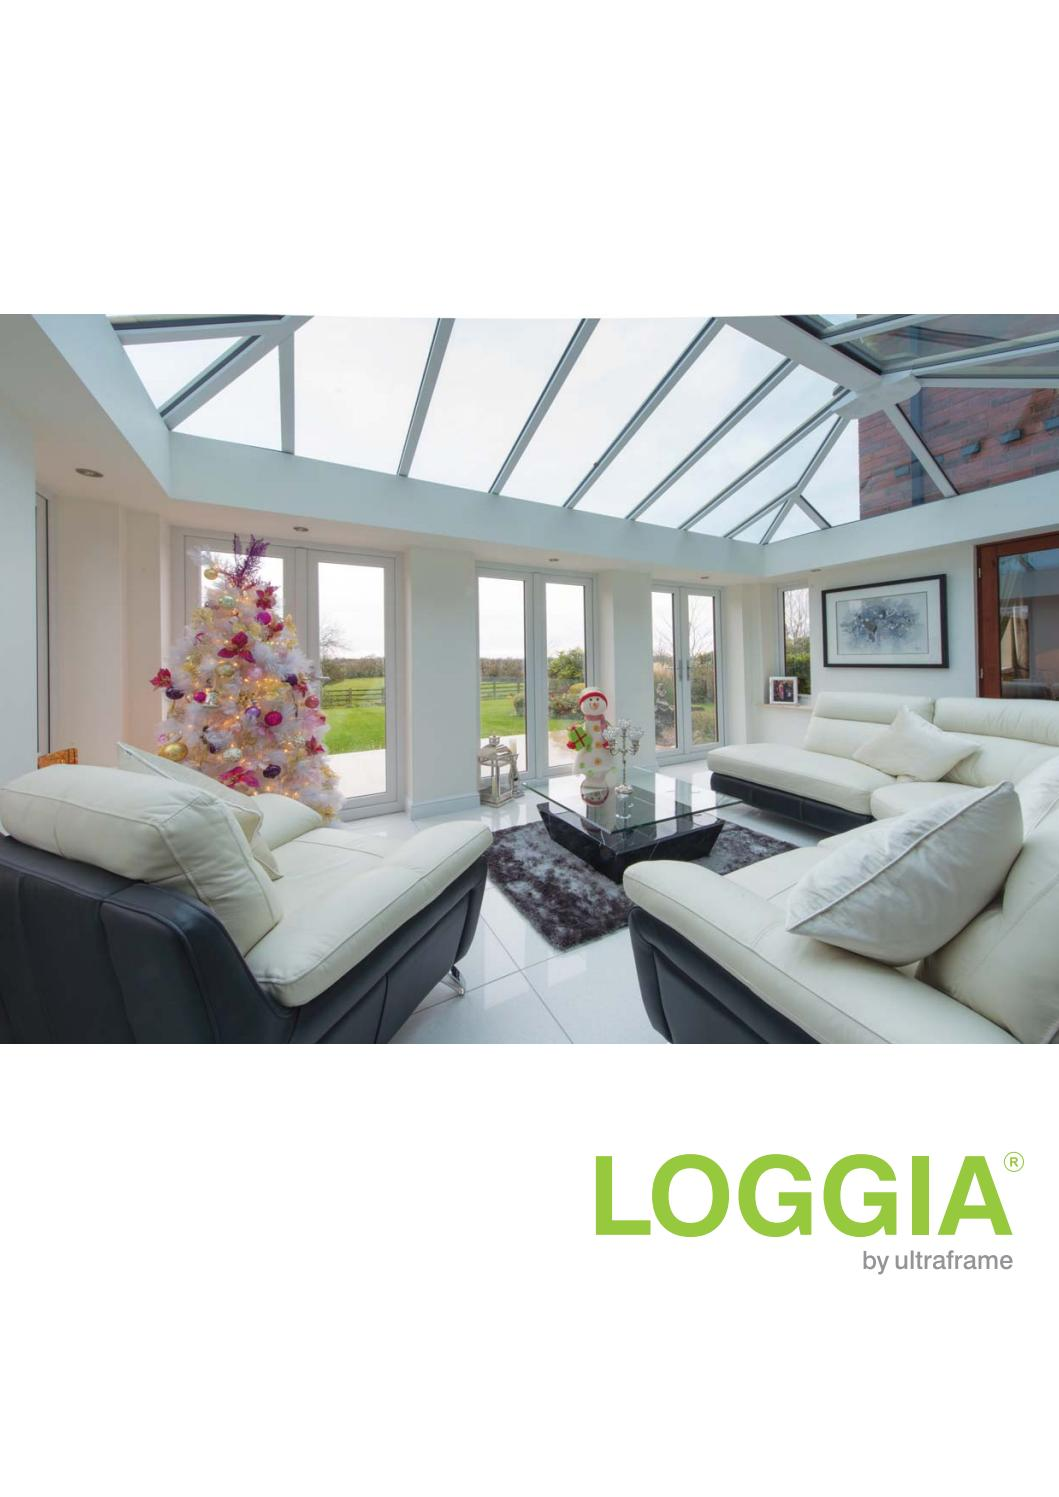 How to insulate the loggia itself: recommendations and methods